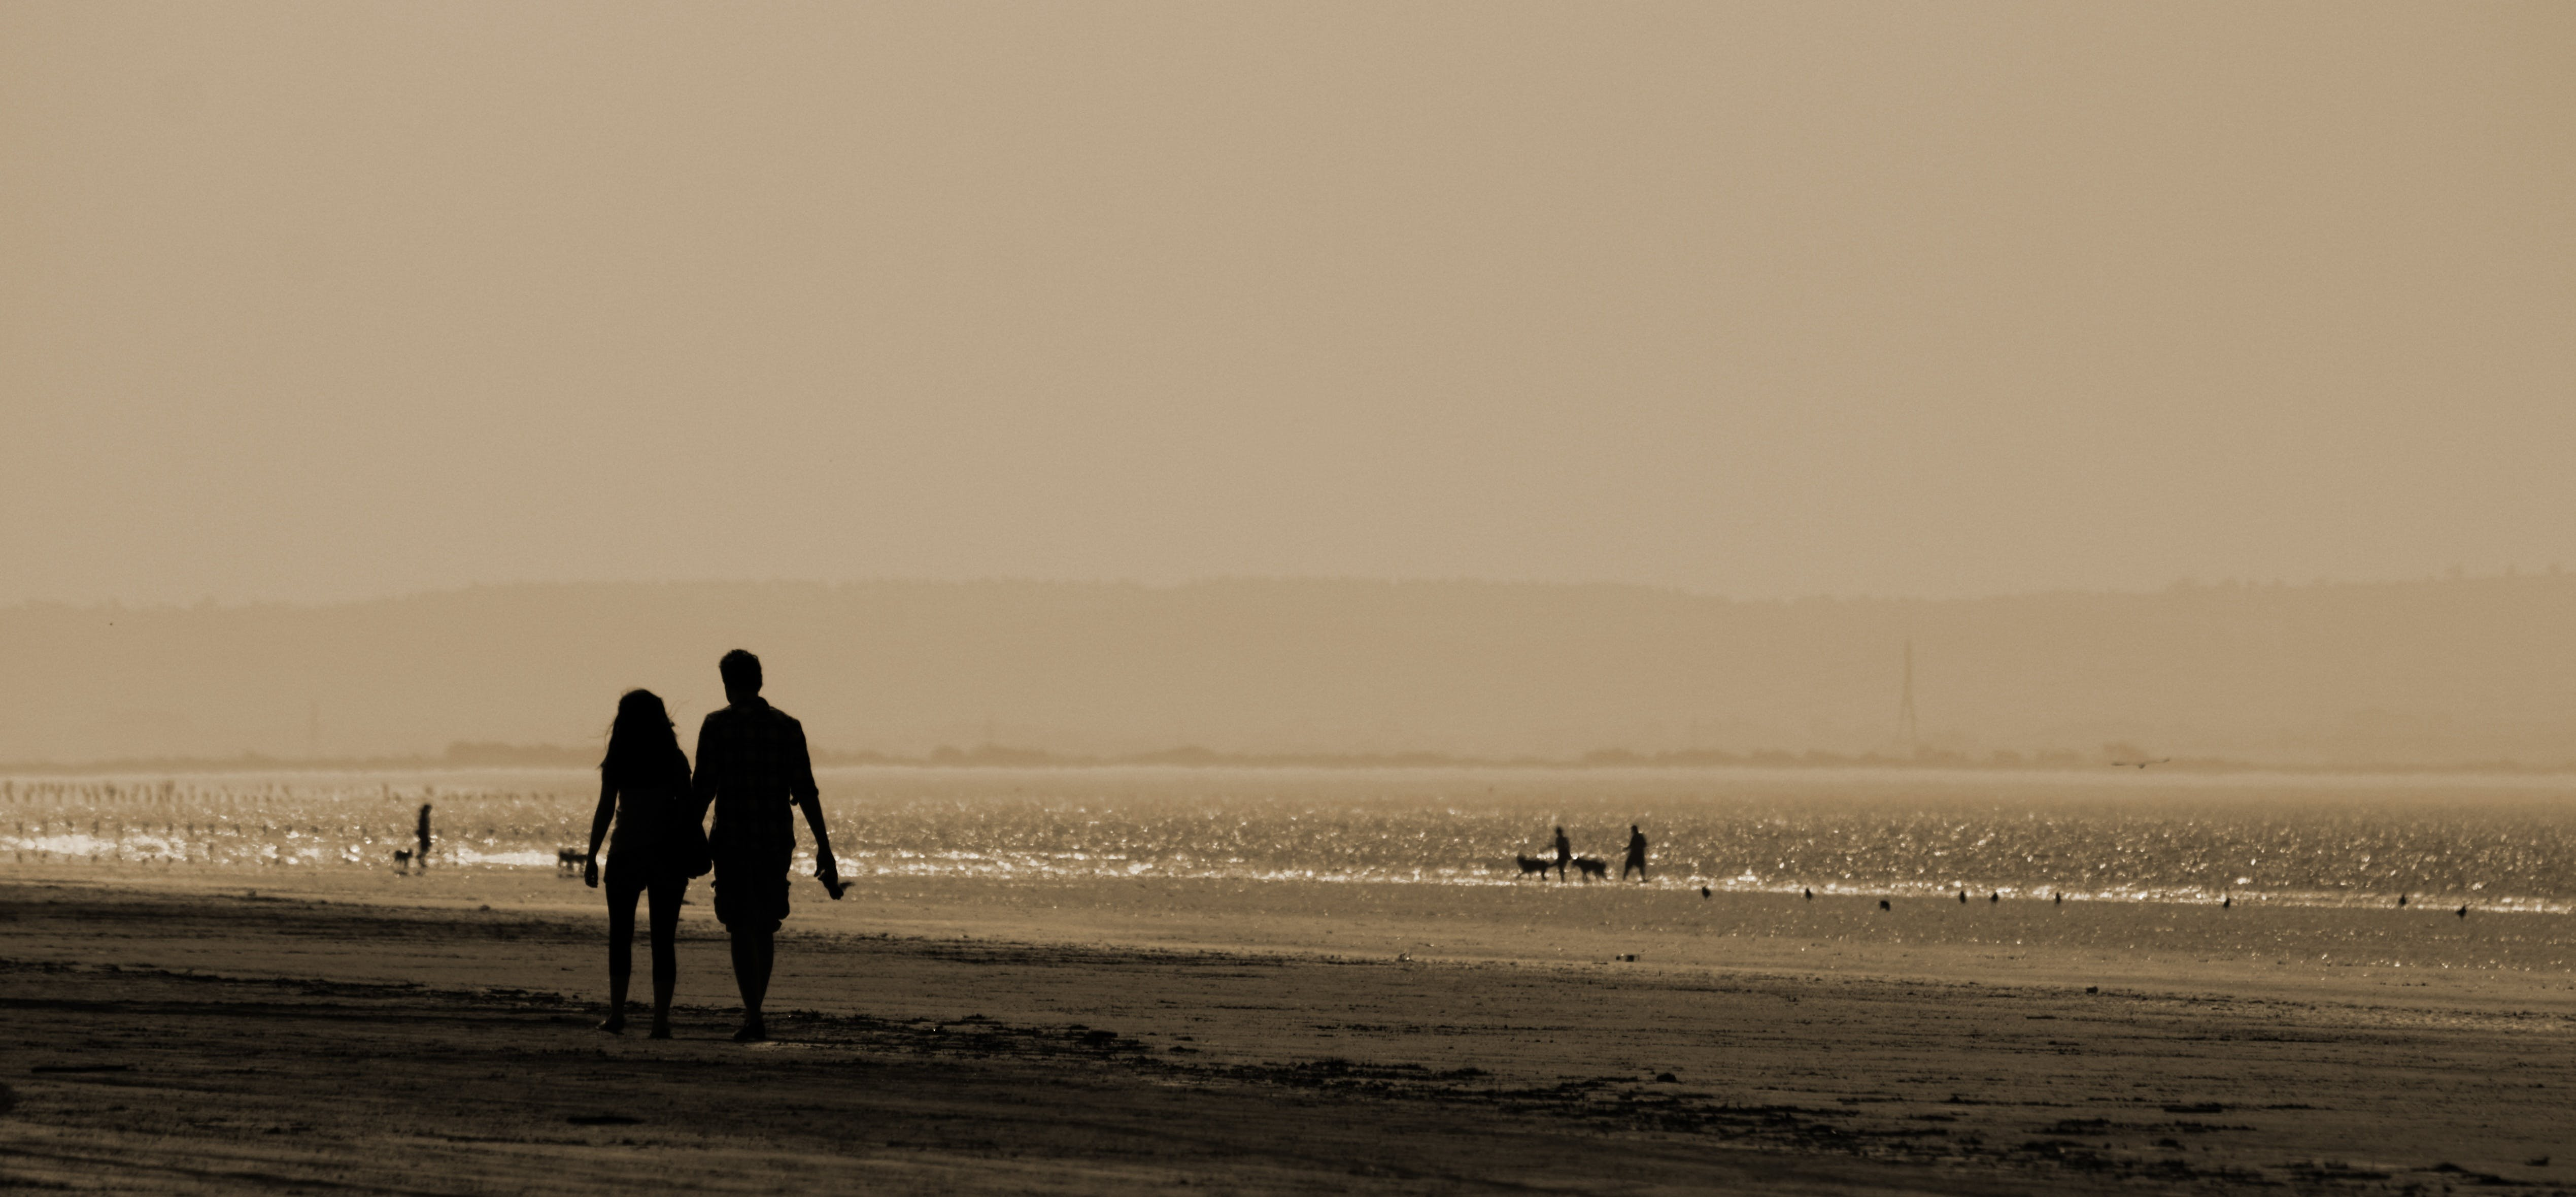 Silhouette Man and Woman Walking Near Sea